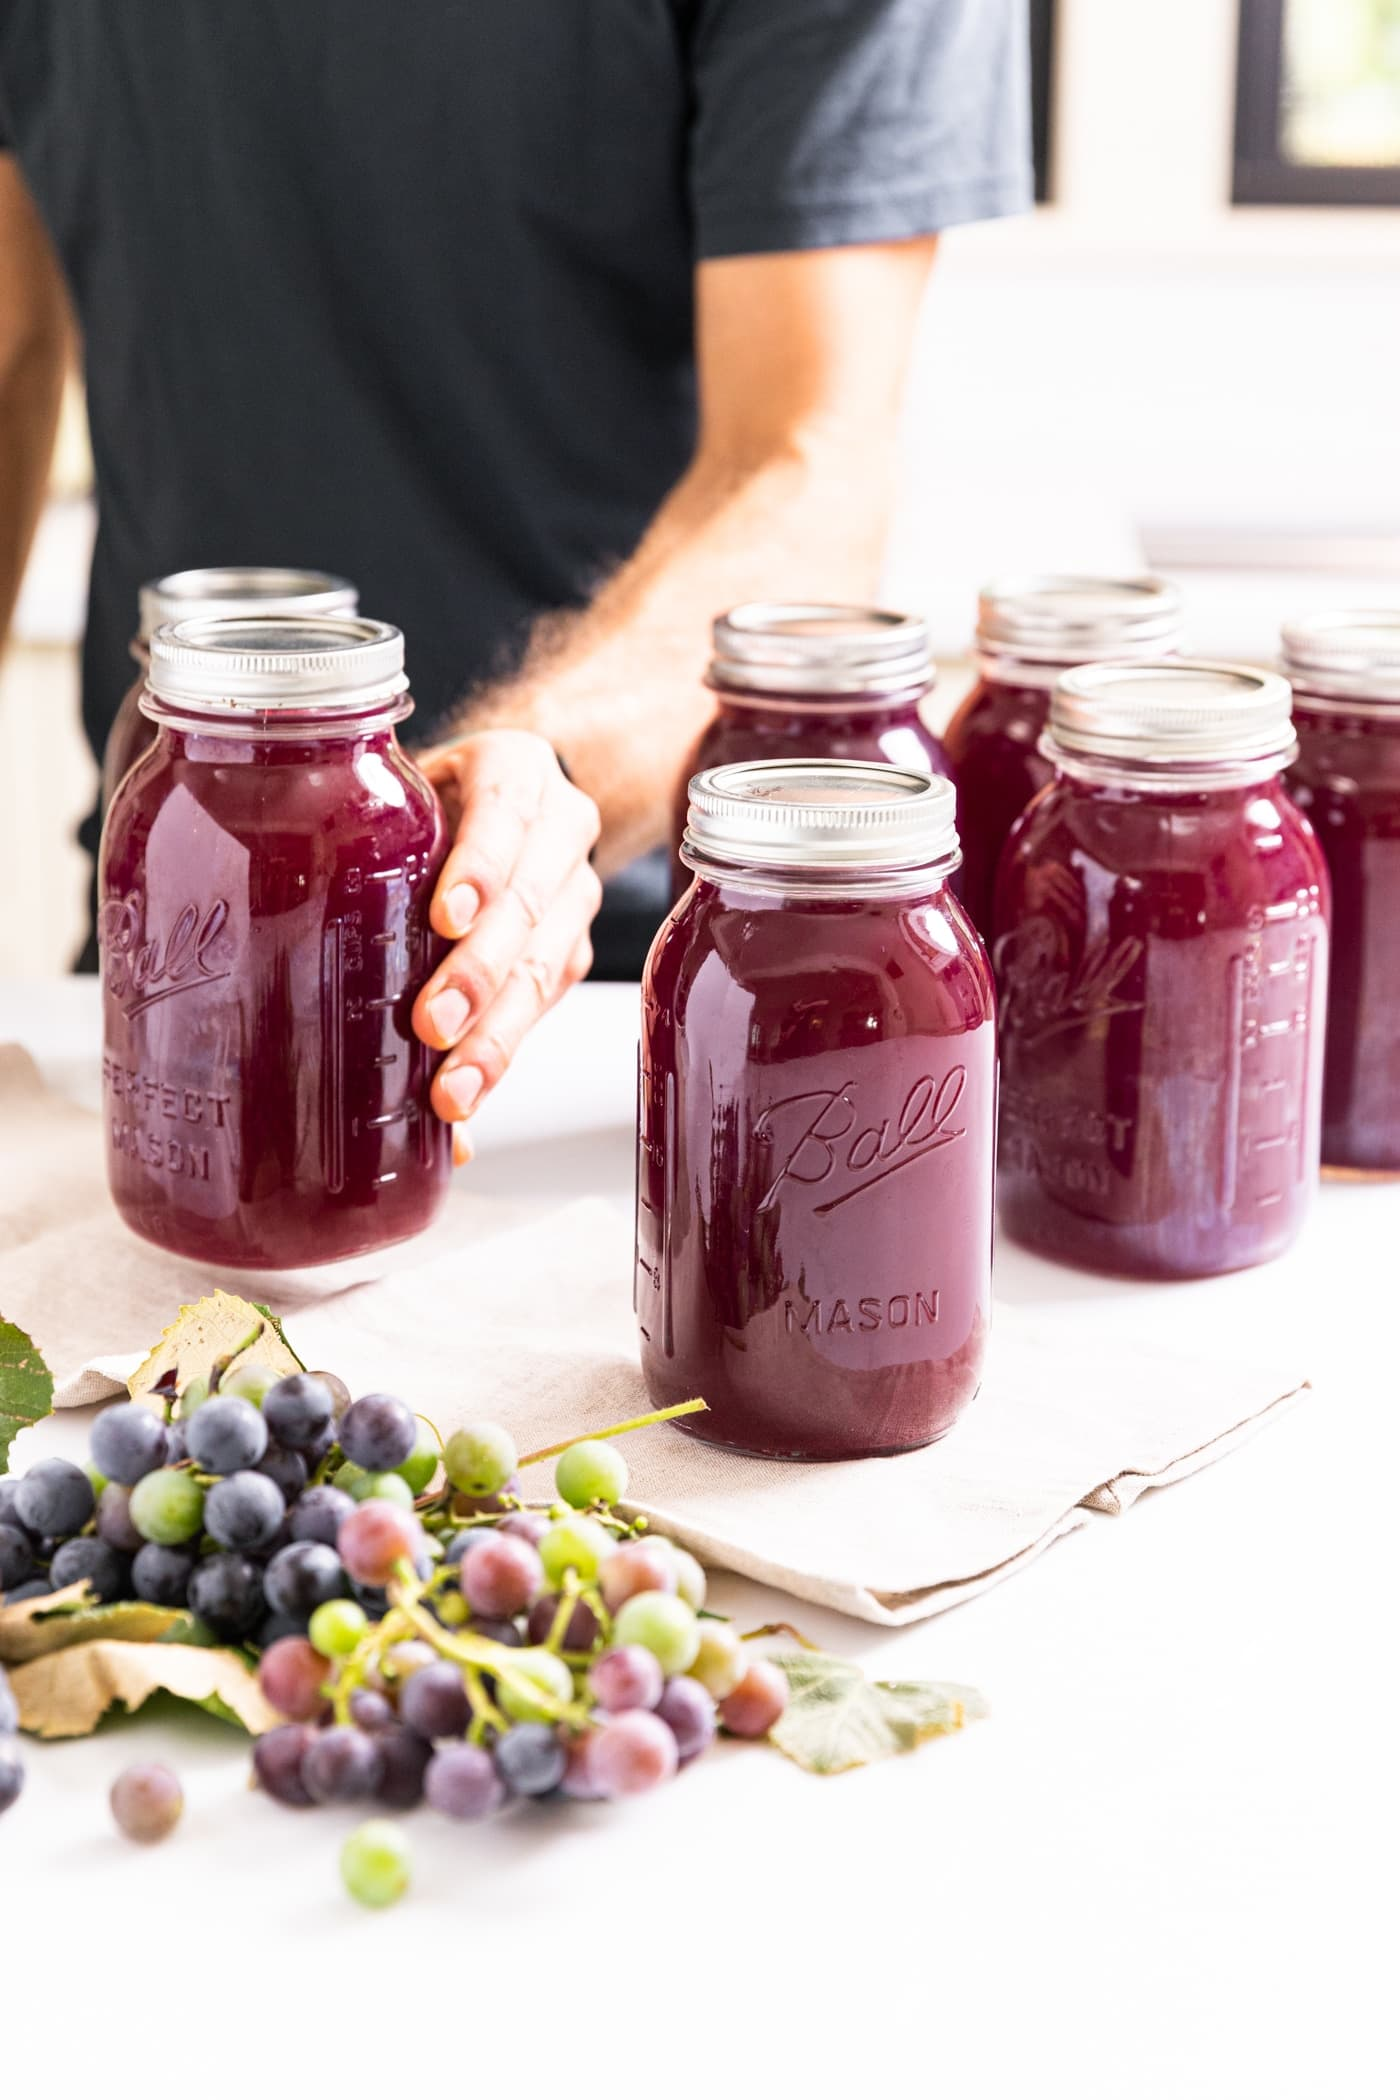 Hand holding glass jar filled with dark purple grape juice concentrate sitting on white countertop with grapes in front